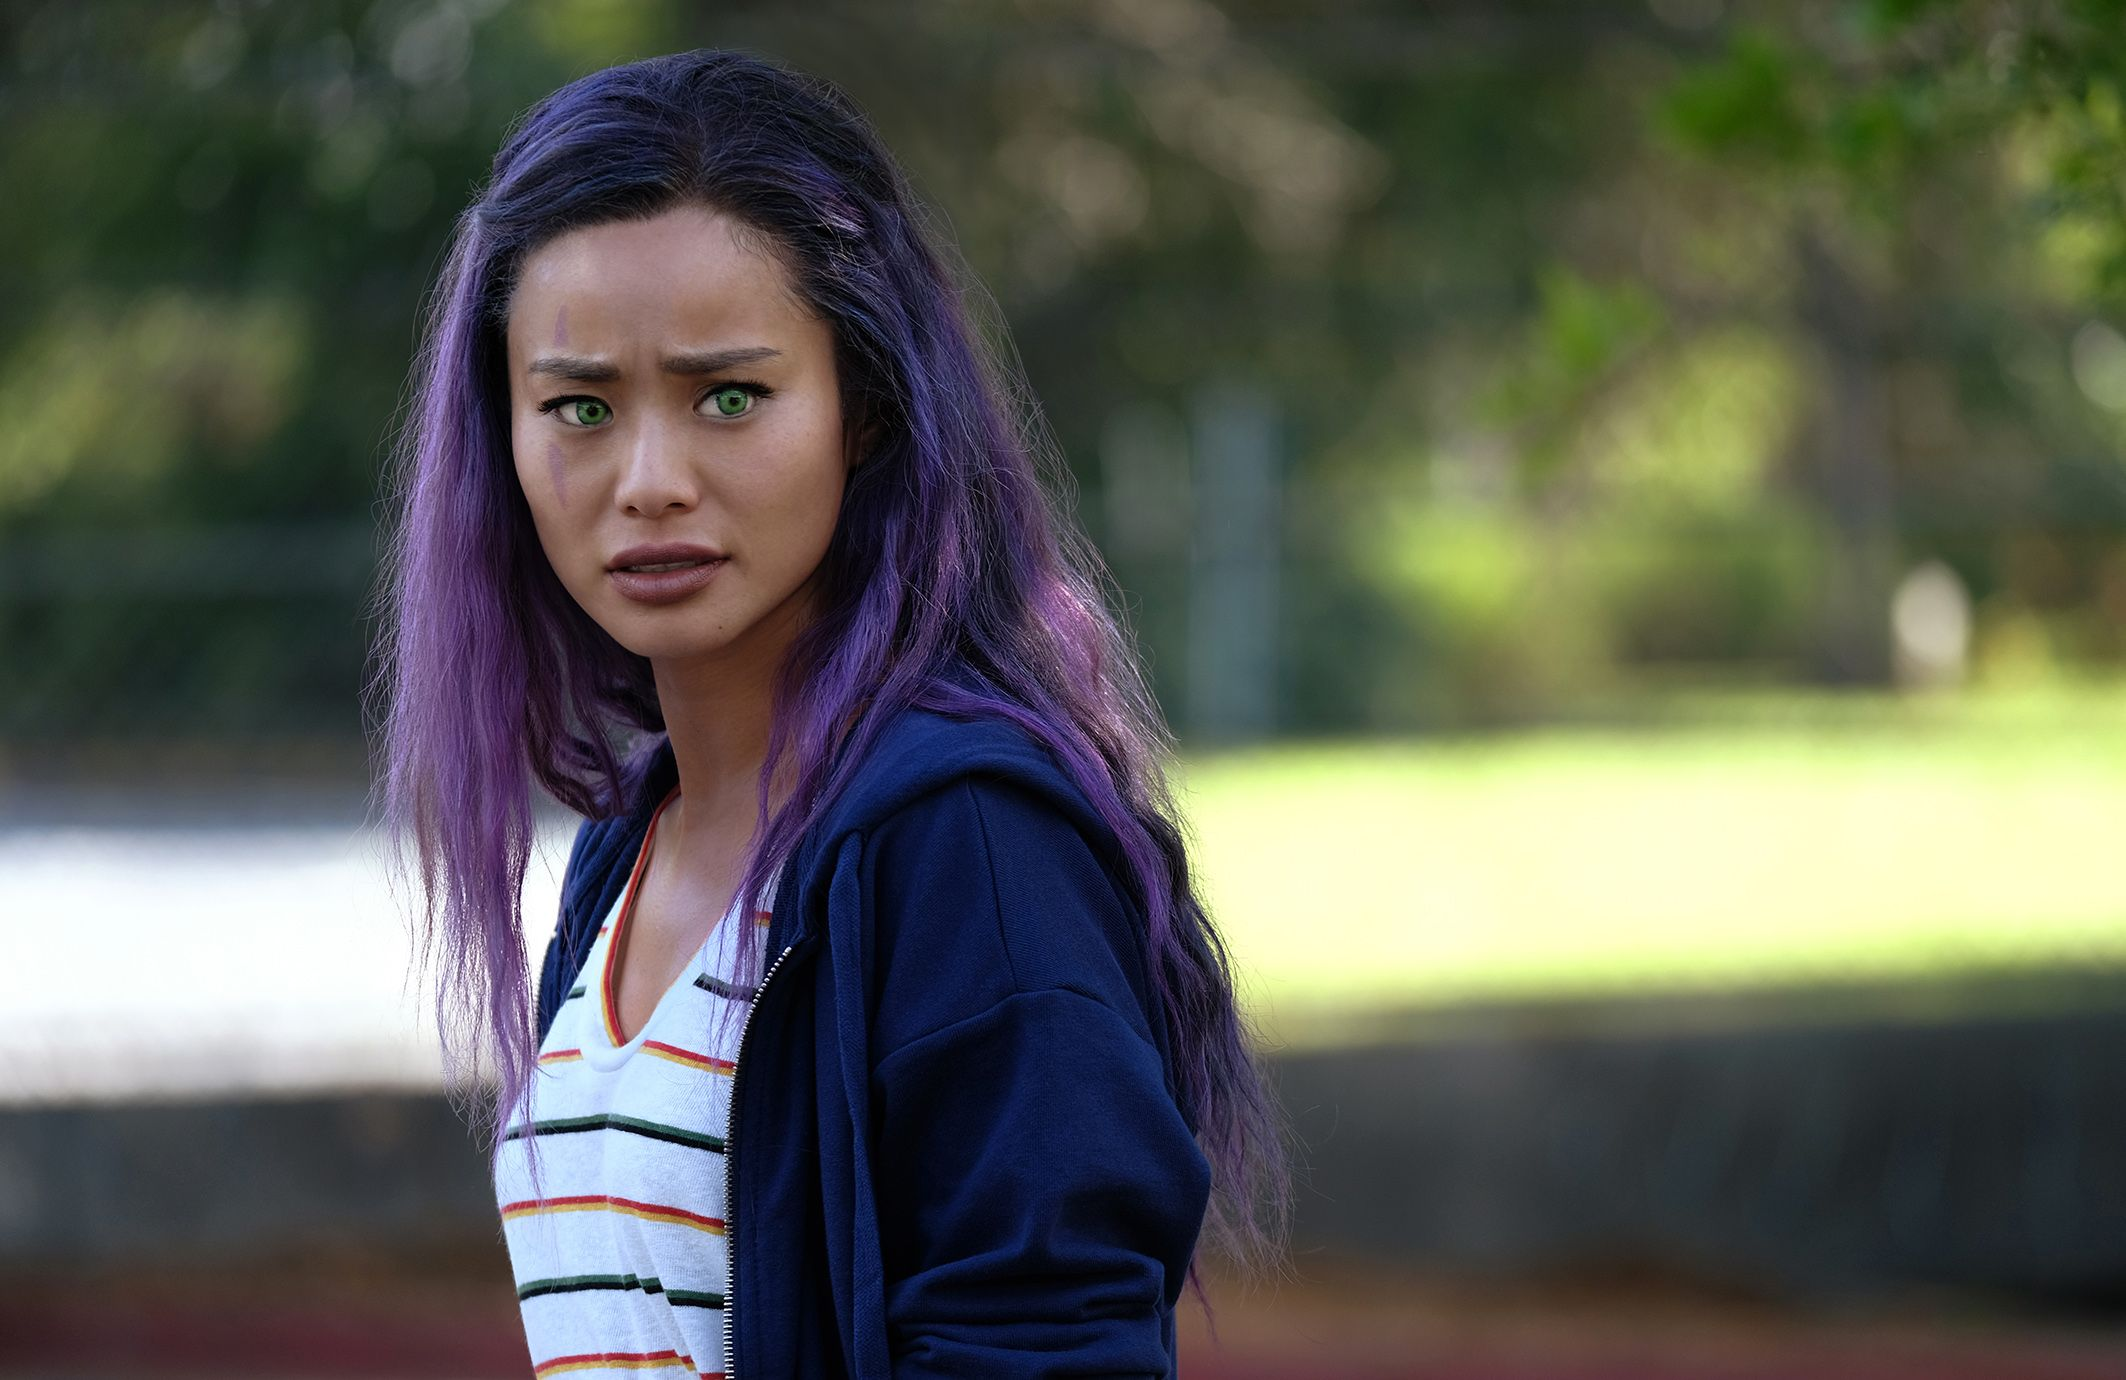 the-gifted-season-2-episode-4-outmatched-1550177695.jpg